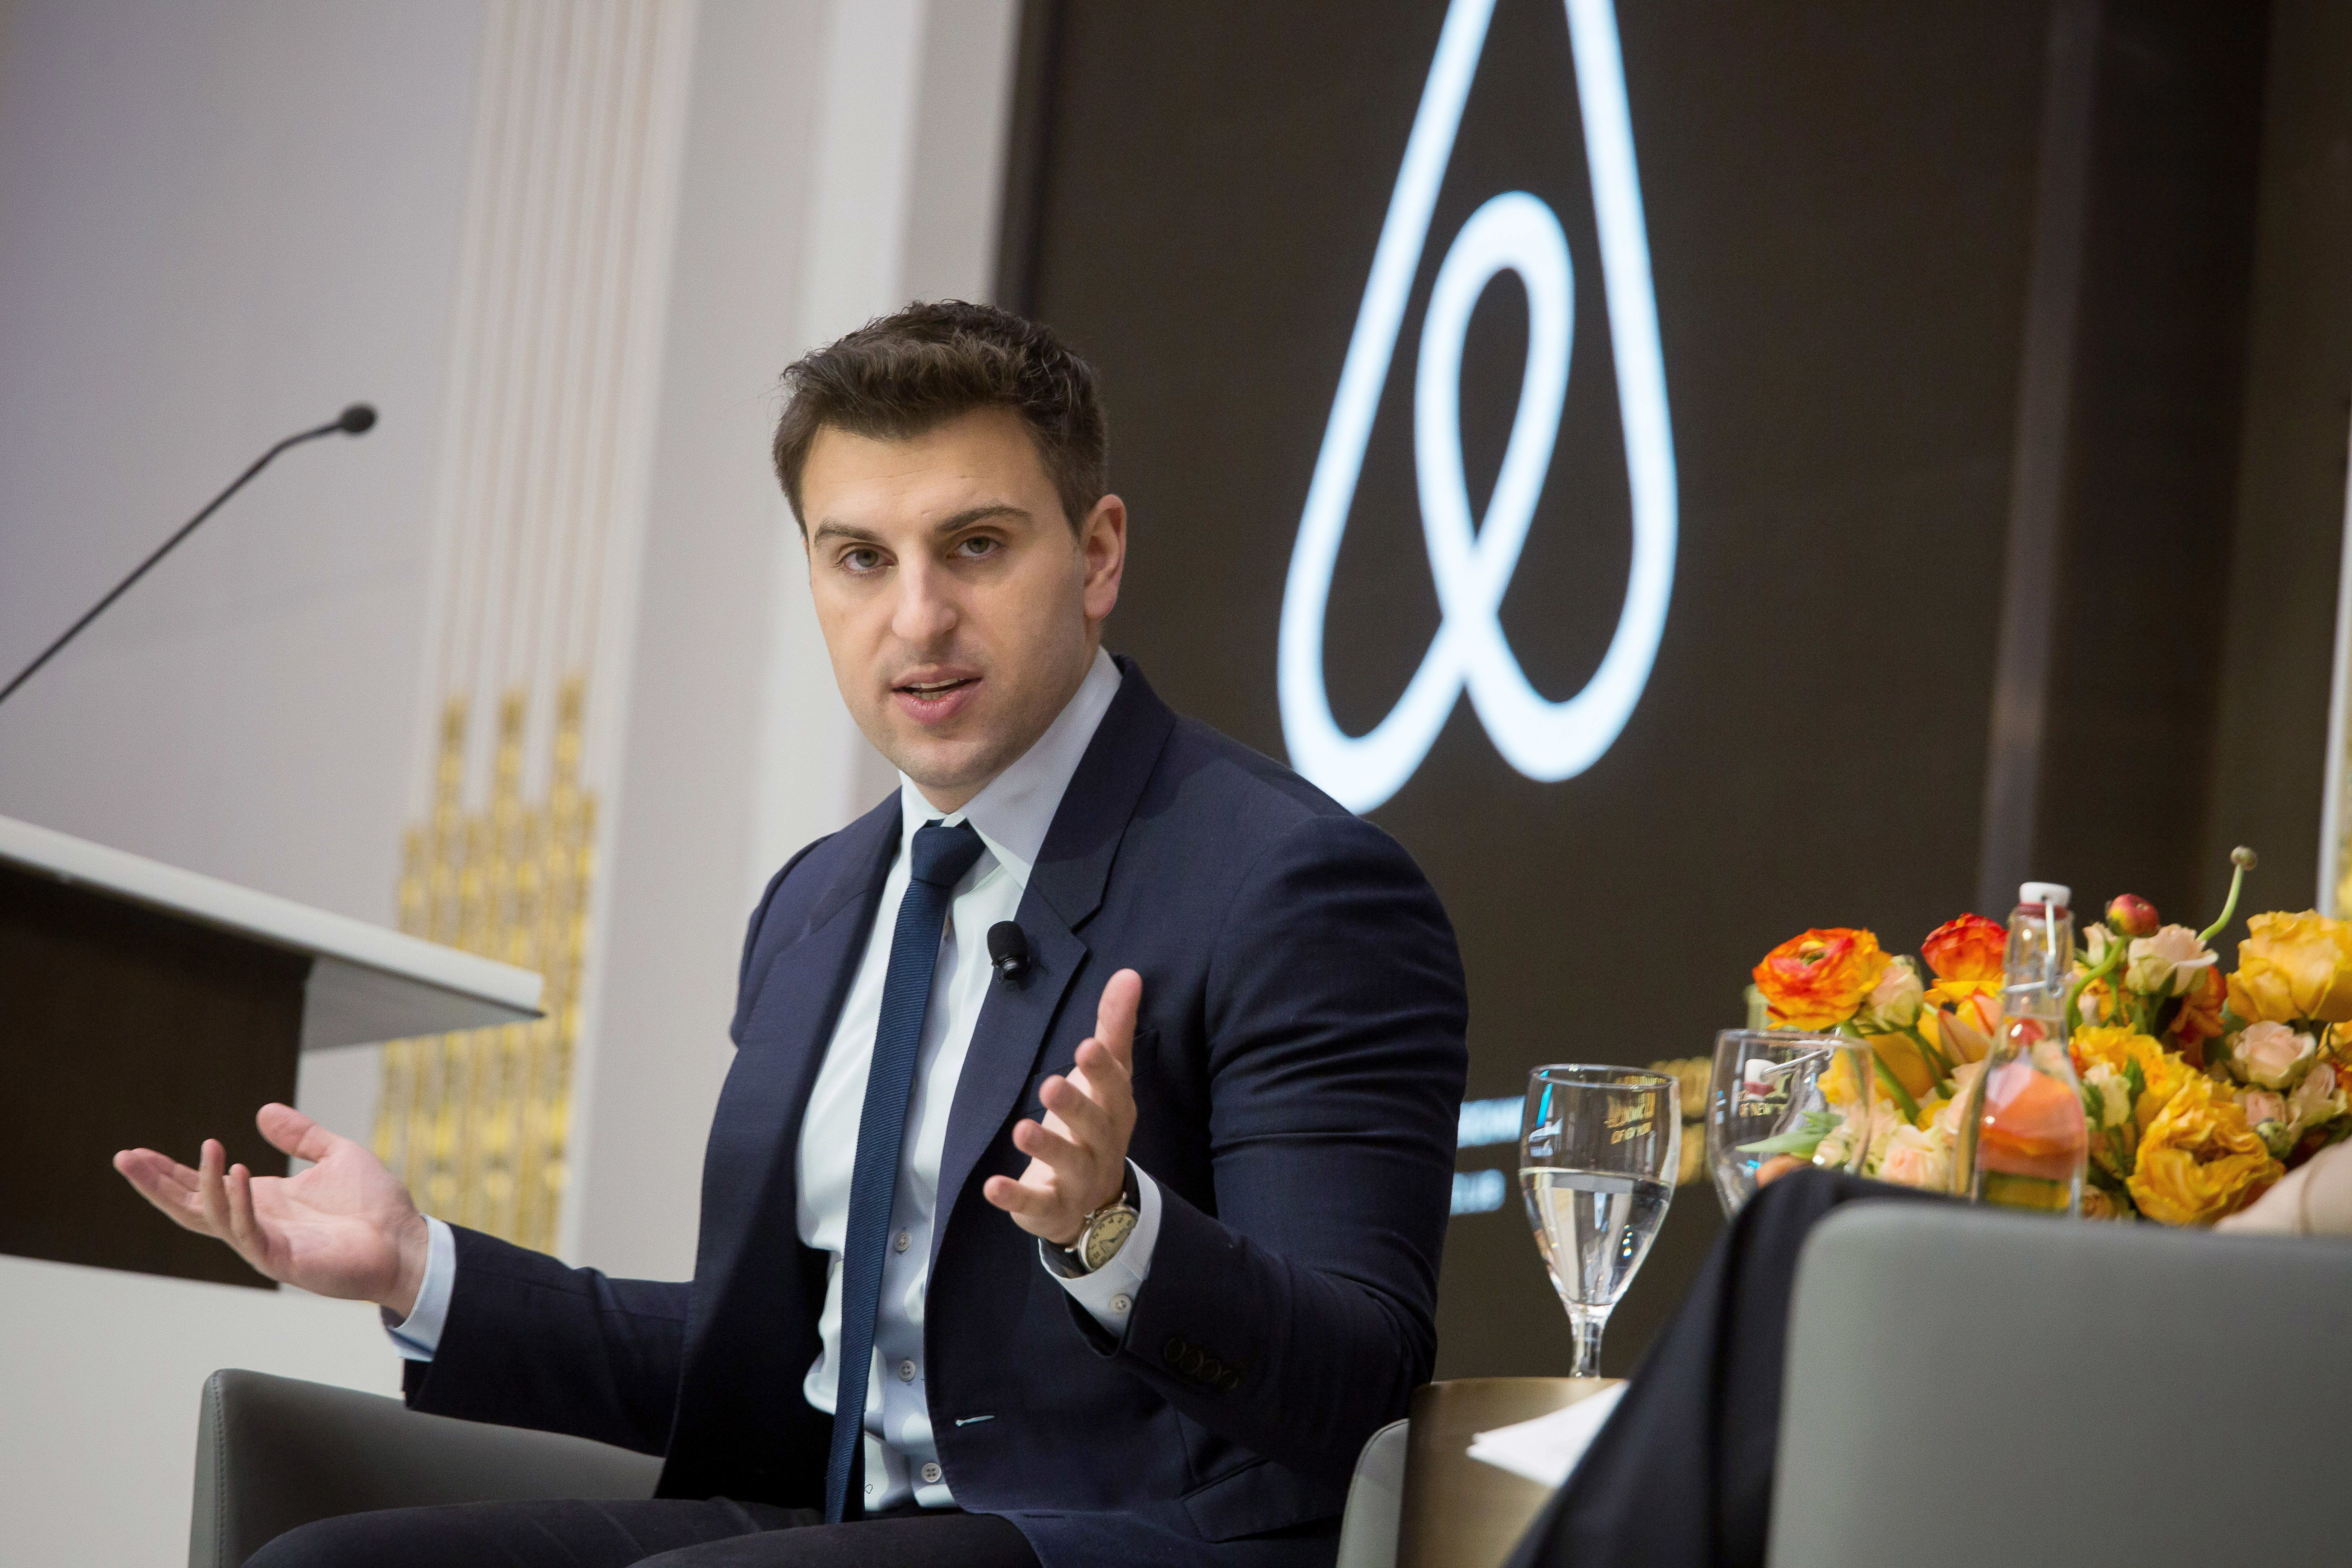 Brian Chesky, chief executive officer and co-founder of Airbnb Inc., speaks during an Economic Club of New York luncheon at the New York Stock Exchange (NYSE) in New York, U.S., on Monday, March 13, 2017. Airbnb is about halfway through a 2-year process of preparing to be ready to go public, Chesky said. Photographer: Michael Nagle/Bloomberg via Getty Images